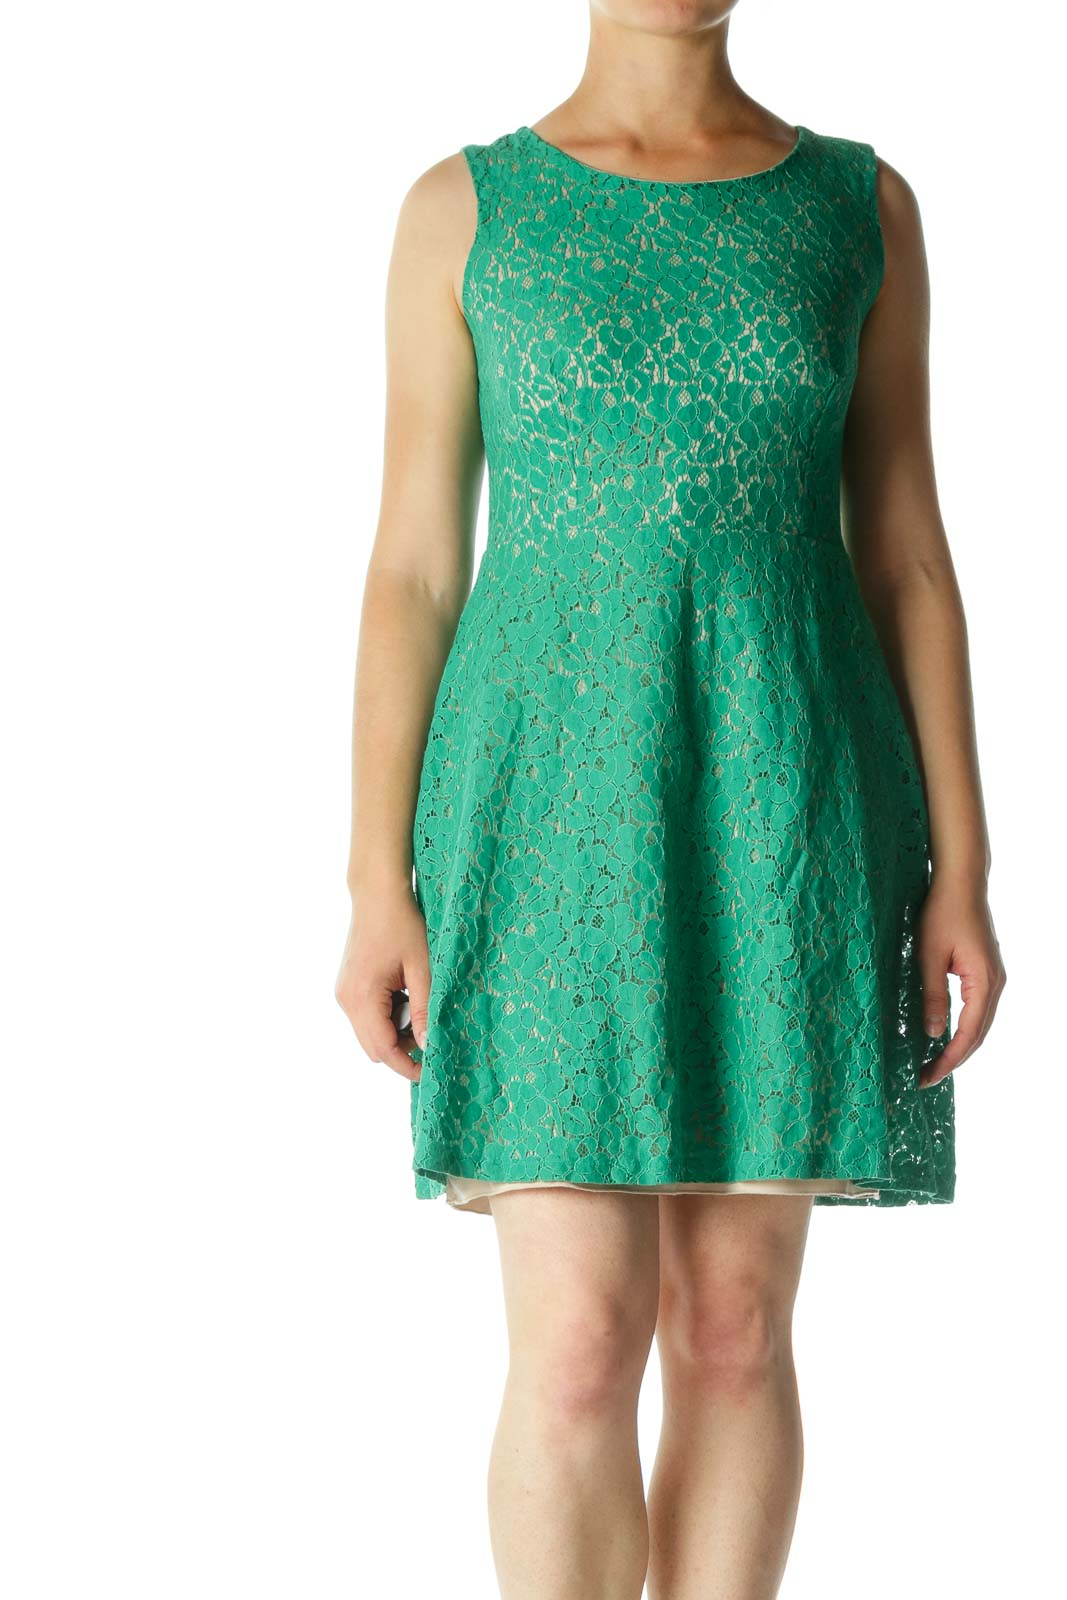 Green Lace Cocktail Dress with Cut-Out Back